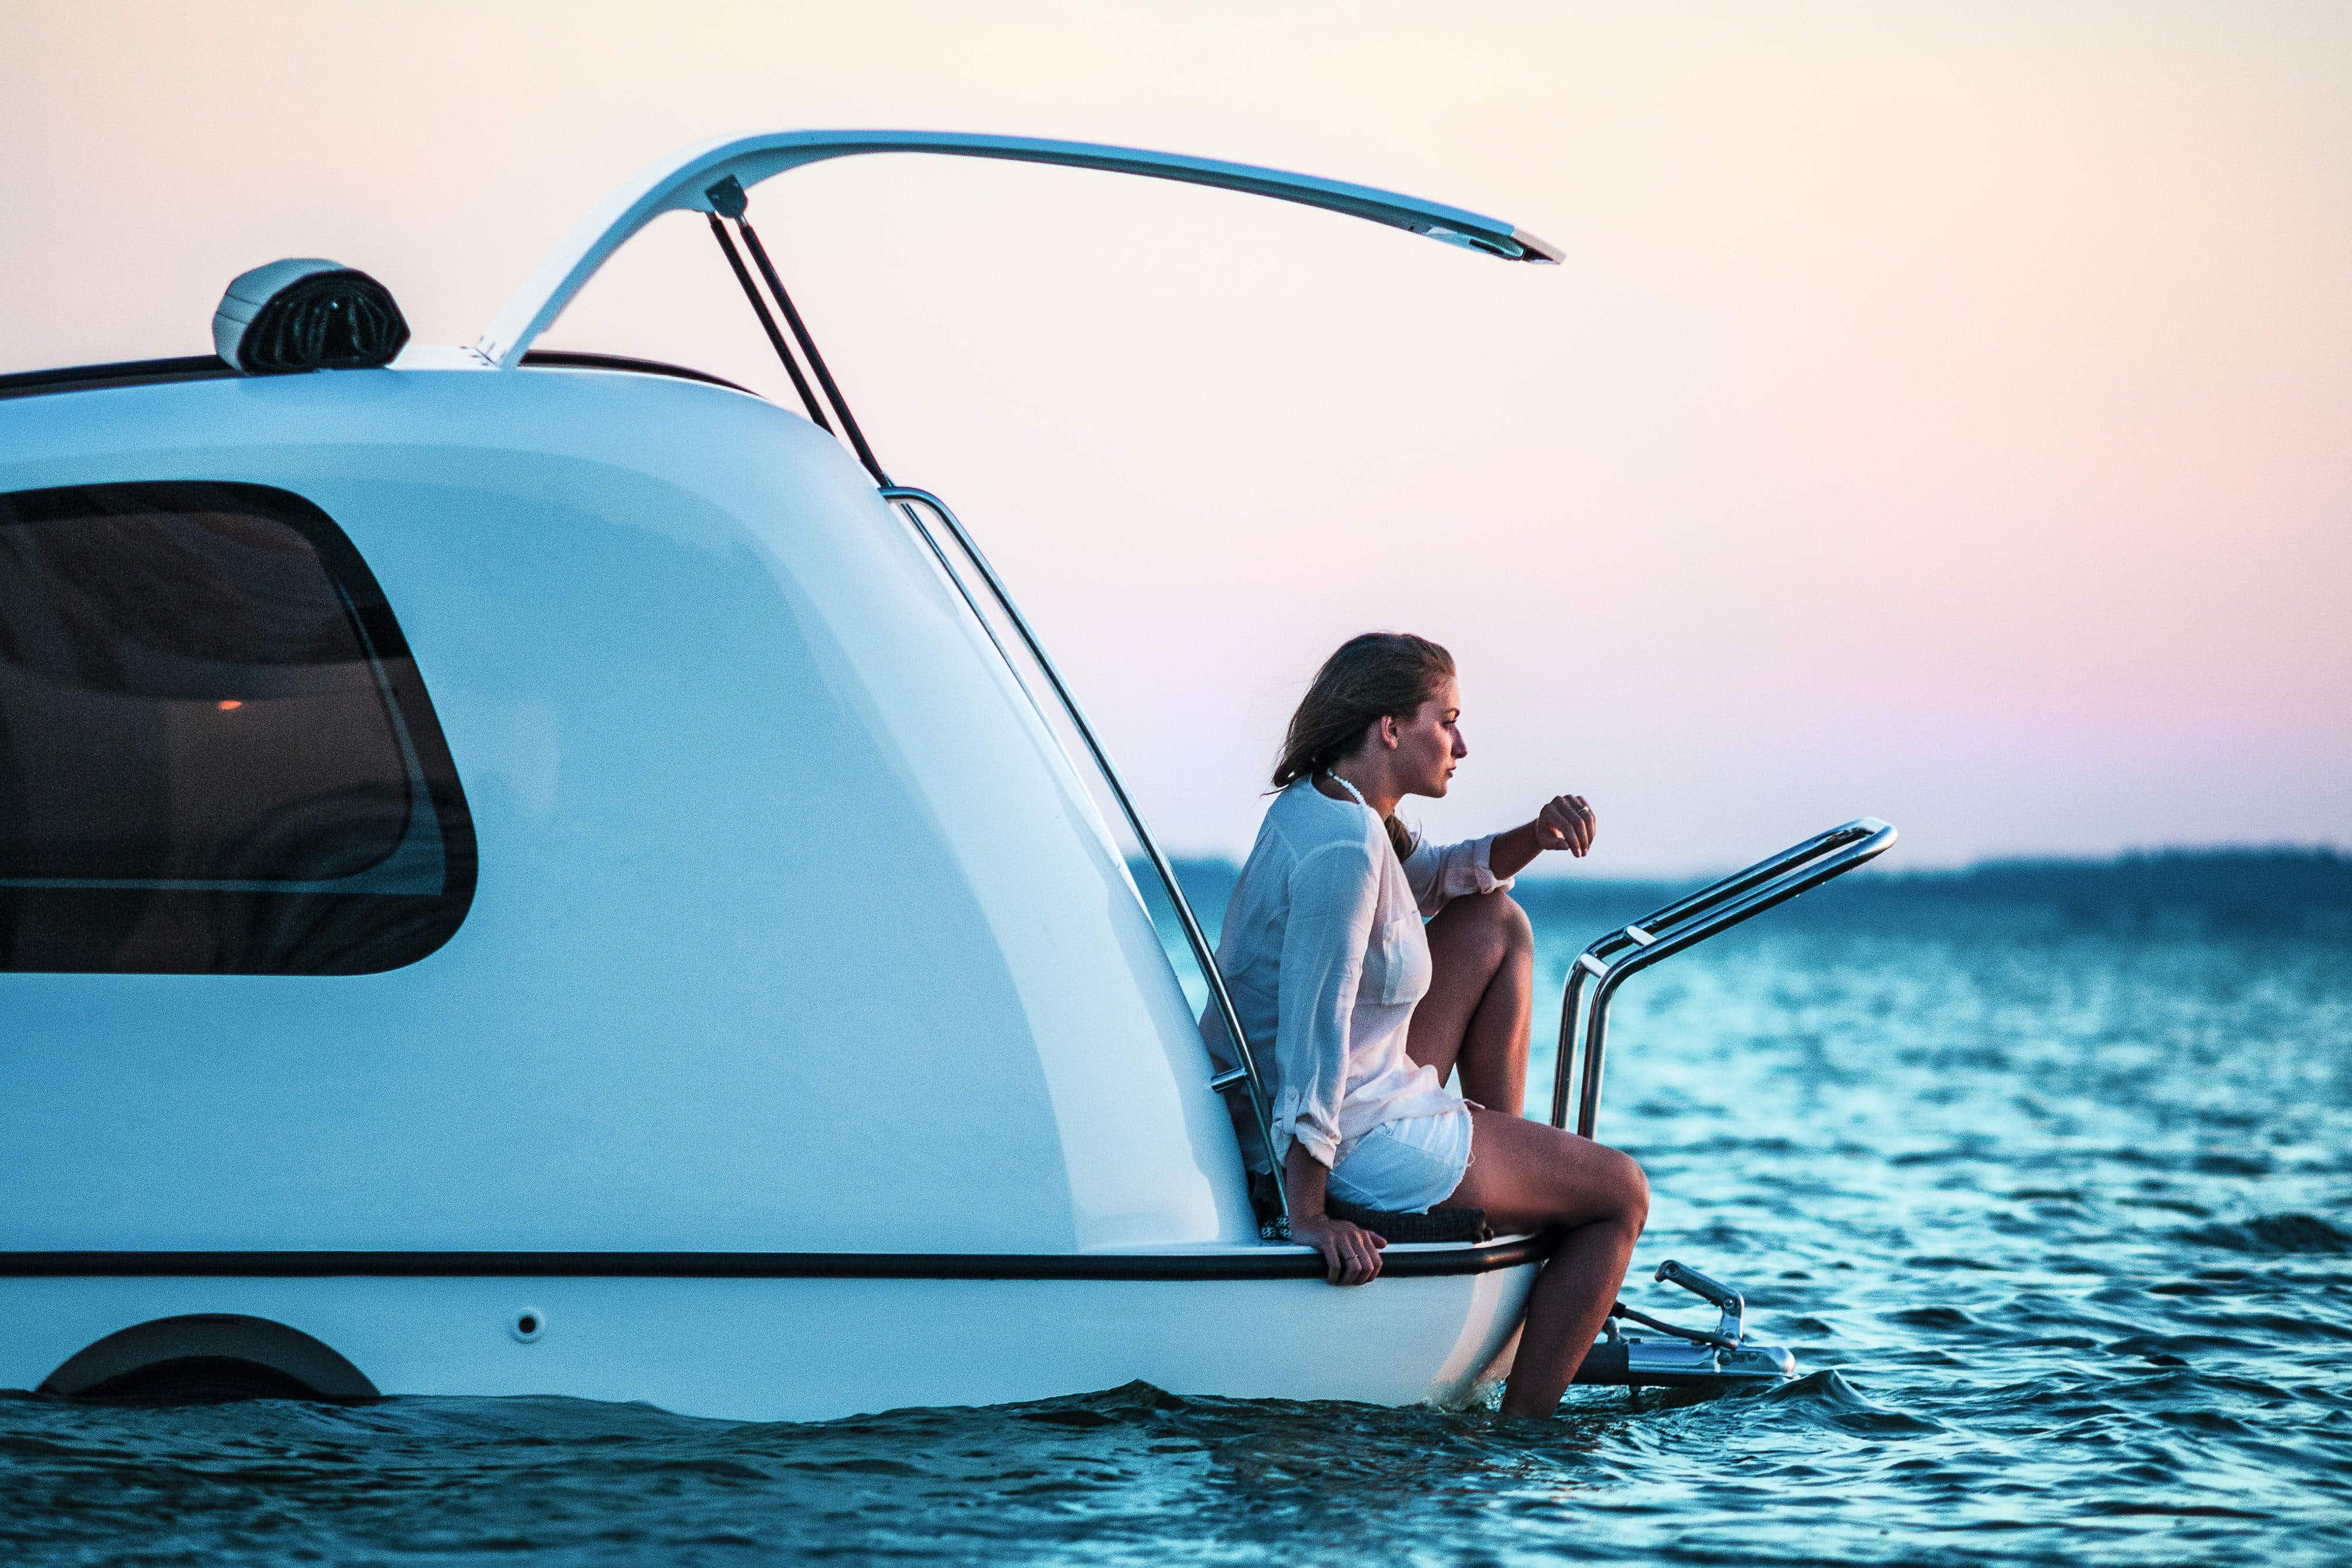 This tiny camper van can actually transform into a yacht and is quite genius